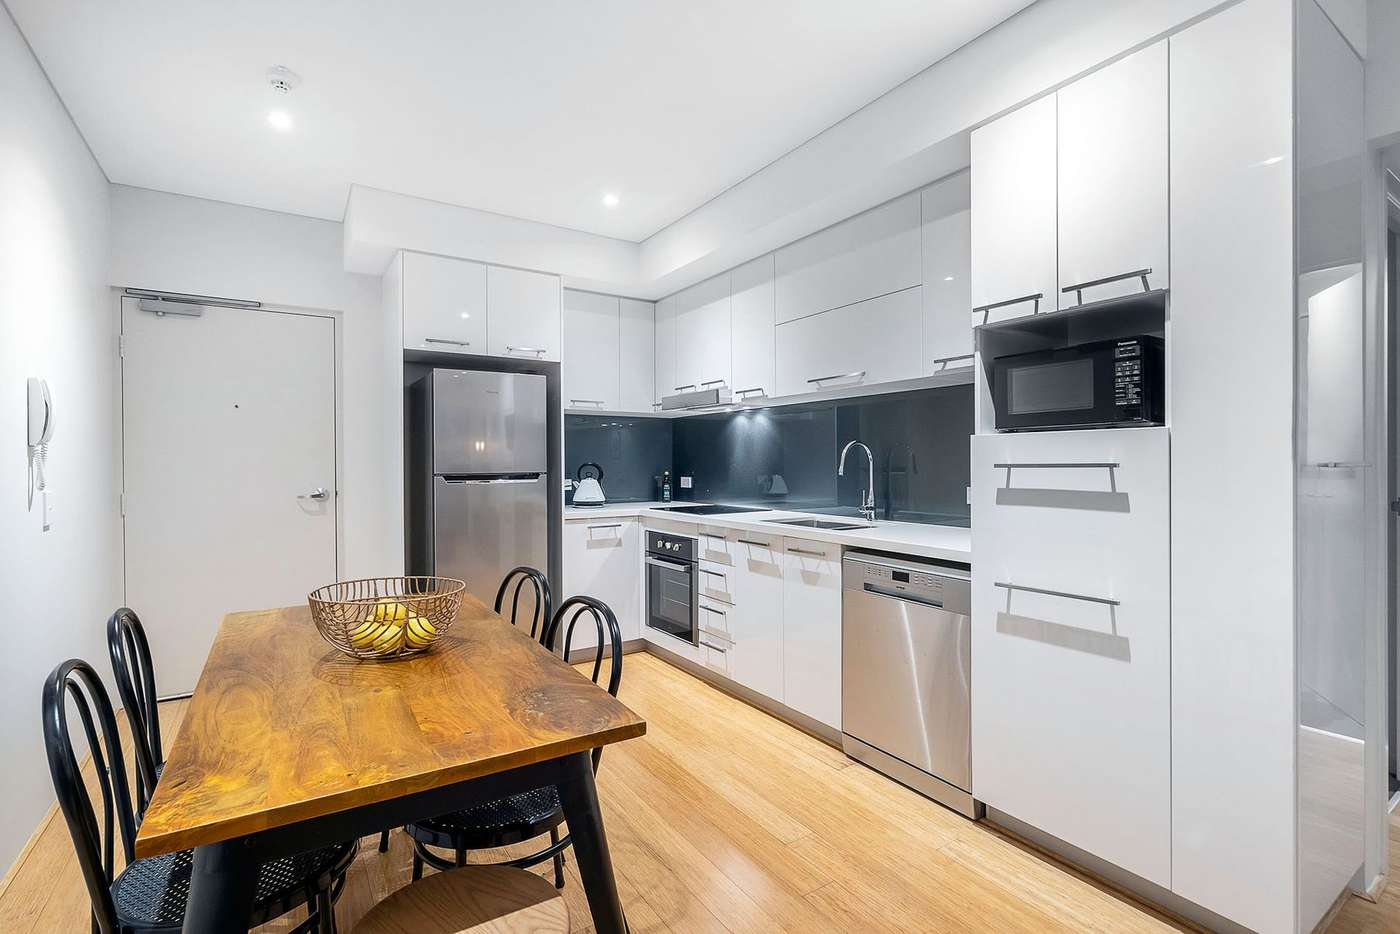 Sixth view of Homely apartment listing, 28/152 Fitzgerald Street, Perth WA 6000